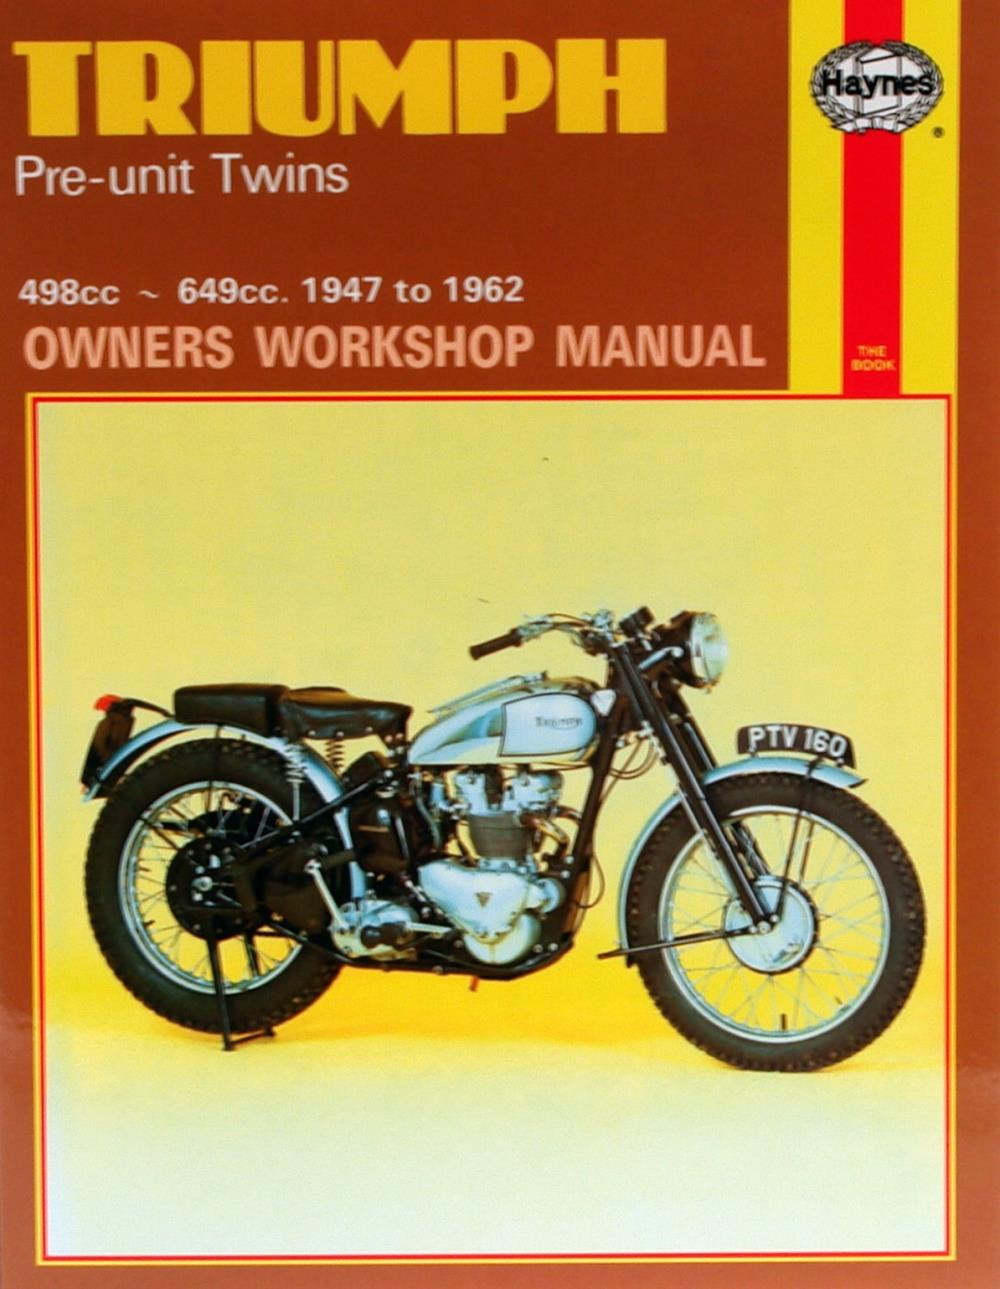 Print & Online Triumph Motorcycle Repair Manuals - Haynes Publishing